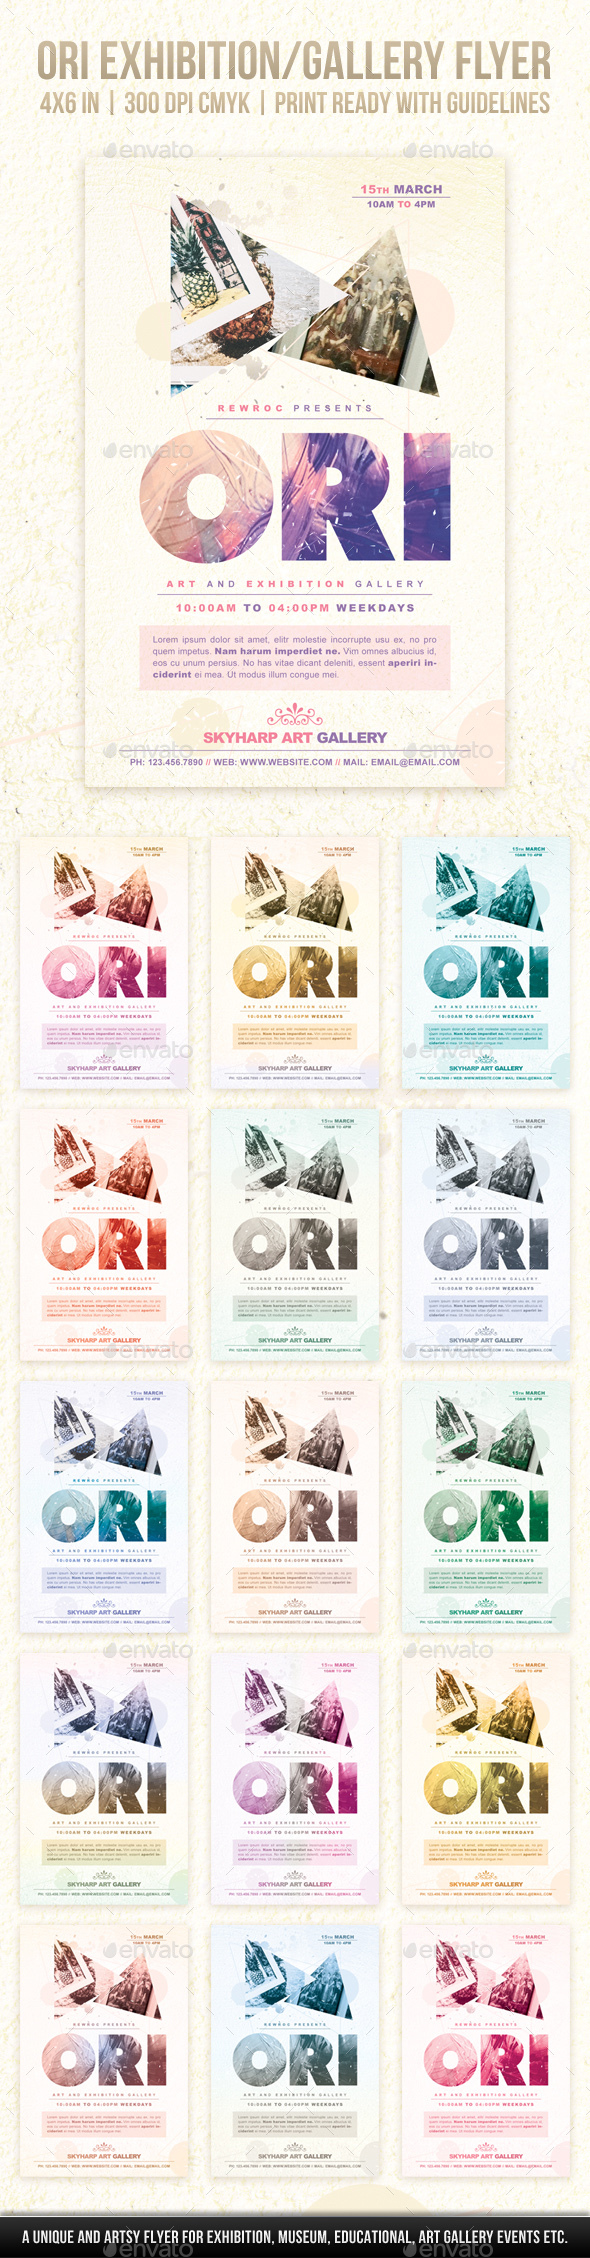 Ori Exhibition/Gallery Flyer - Miscellaneous Events